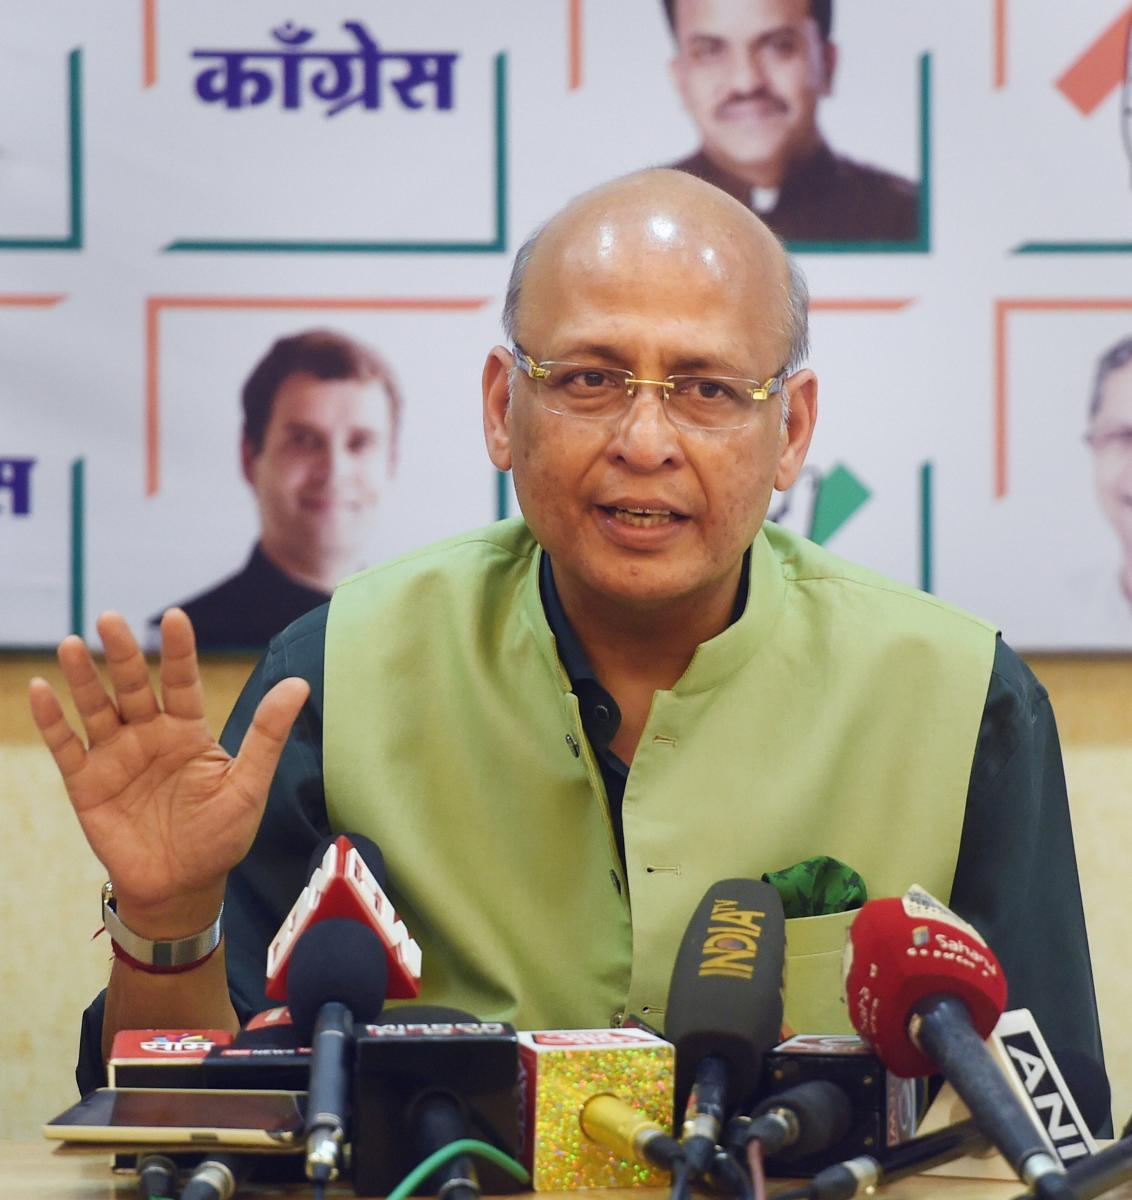 """Accusing the government of repeatedly displaying """"intrusive and nosy behaviour"""", Congress spokesperson Abhishek Singhvi said the BJP-led government wants """"an India that is defined by them"""". (PTI Photo)"""